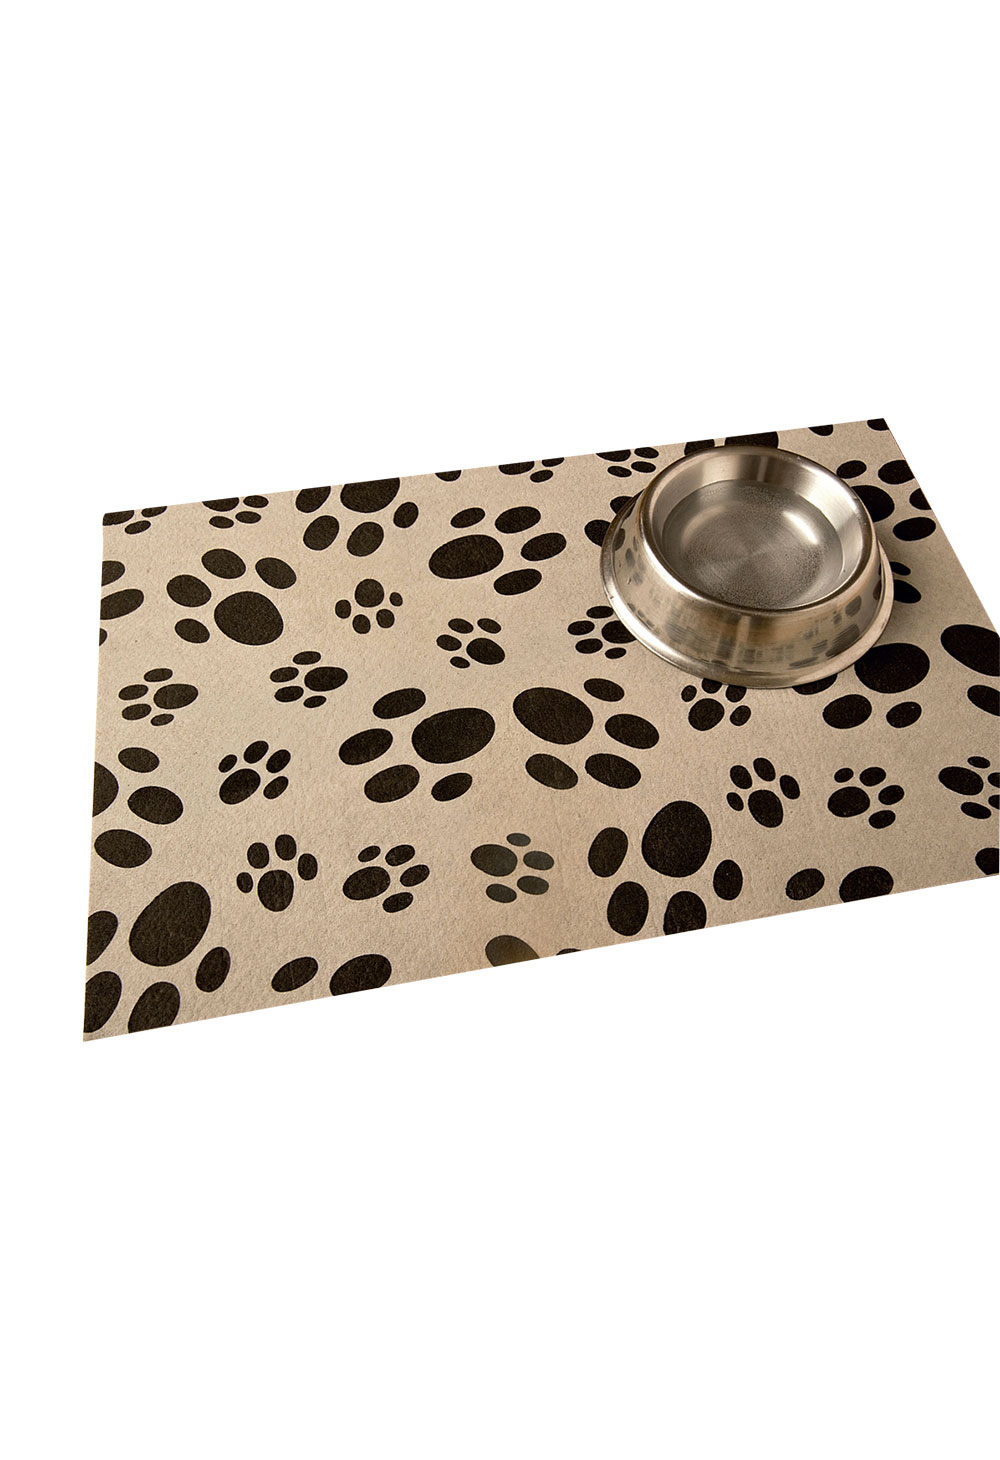 absorbant animaux ru00e9fu00e9rence 094 9717 tapis absorbant pour chien ...